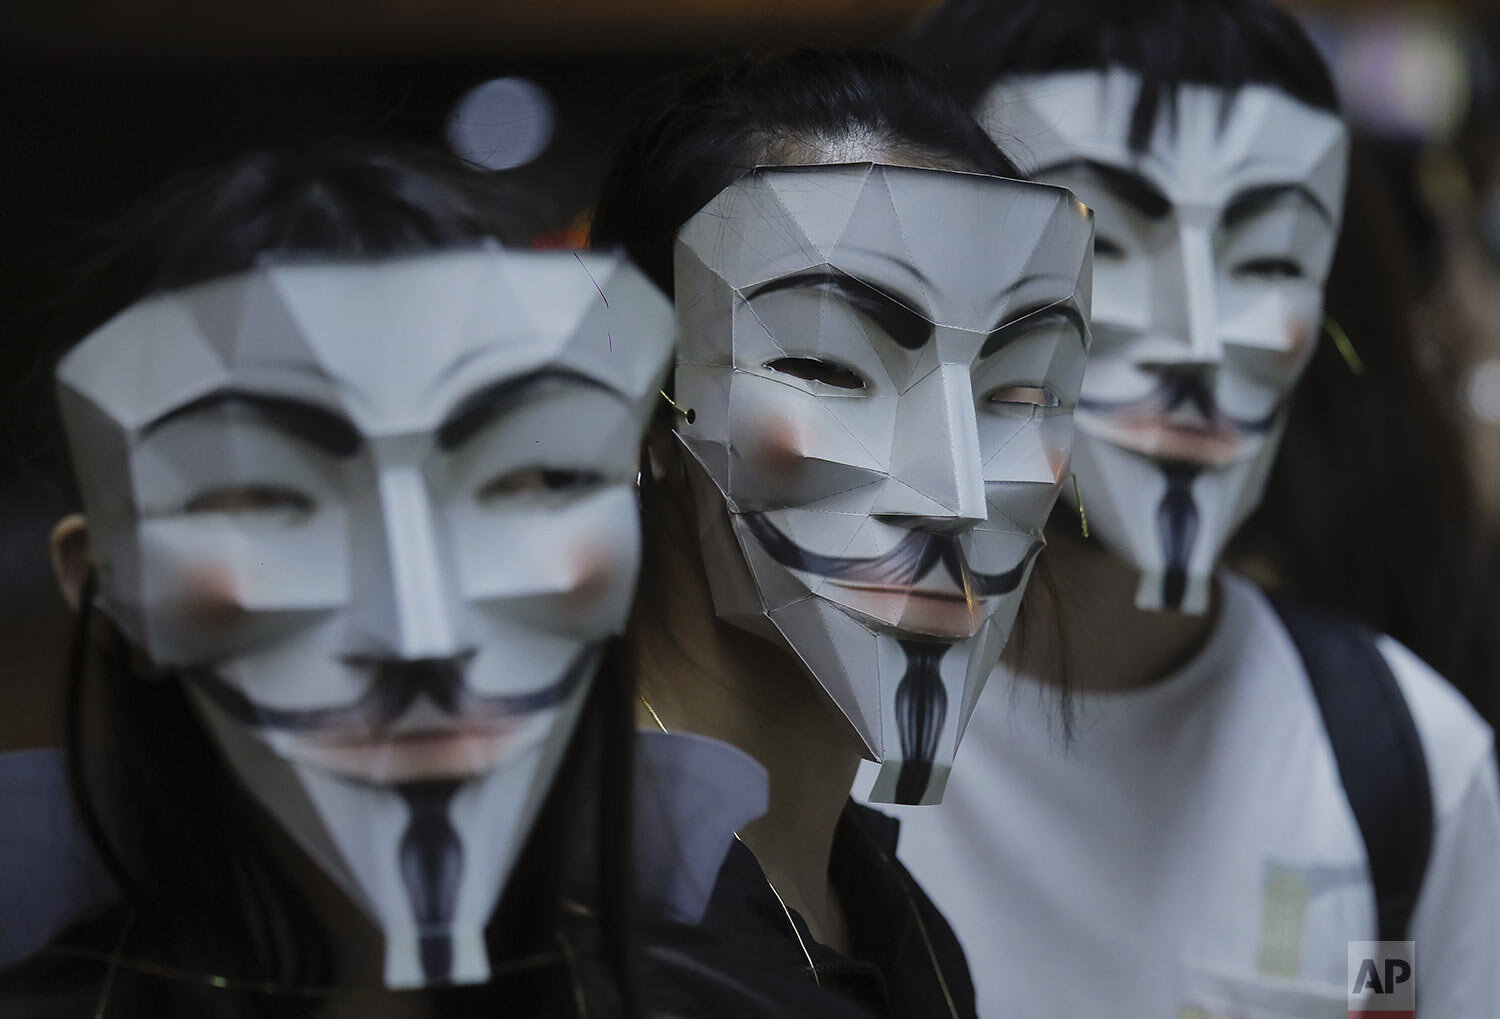 Protesters wear masks in Hong Kong, Friday, Oct. 18, 2019. Hong Kong pro-democracy protesters are donning cartoon/superheroes masks as they formed a human chain across the semiautonomous Chinese city, in defiance of a government ban on face coverings. (AP Photo/Kin Cheung)